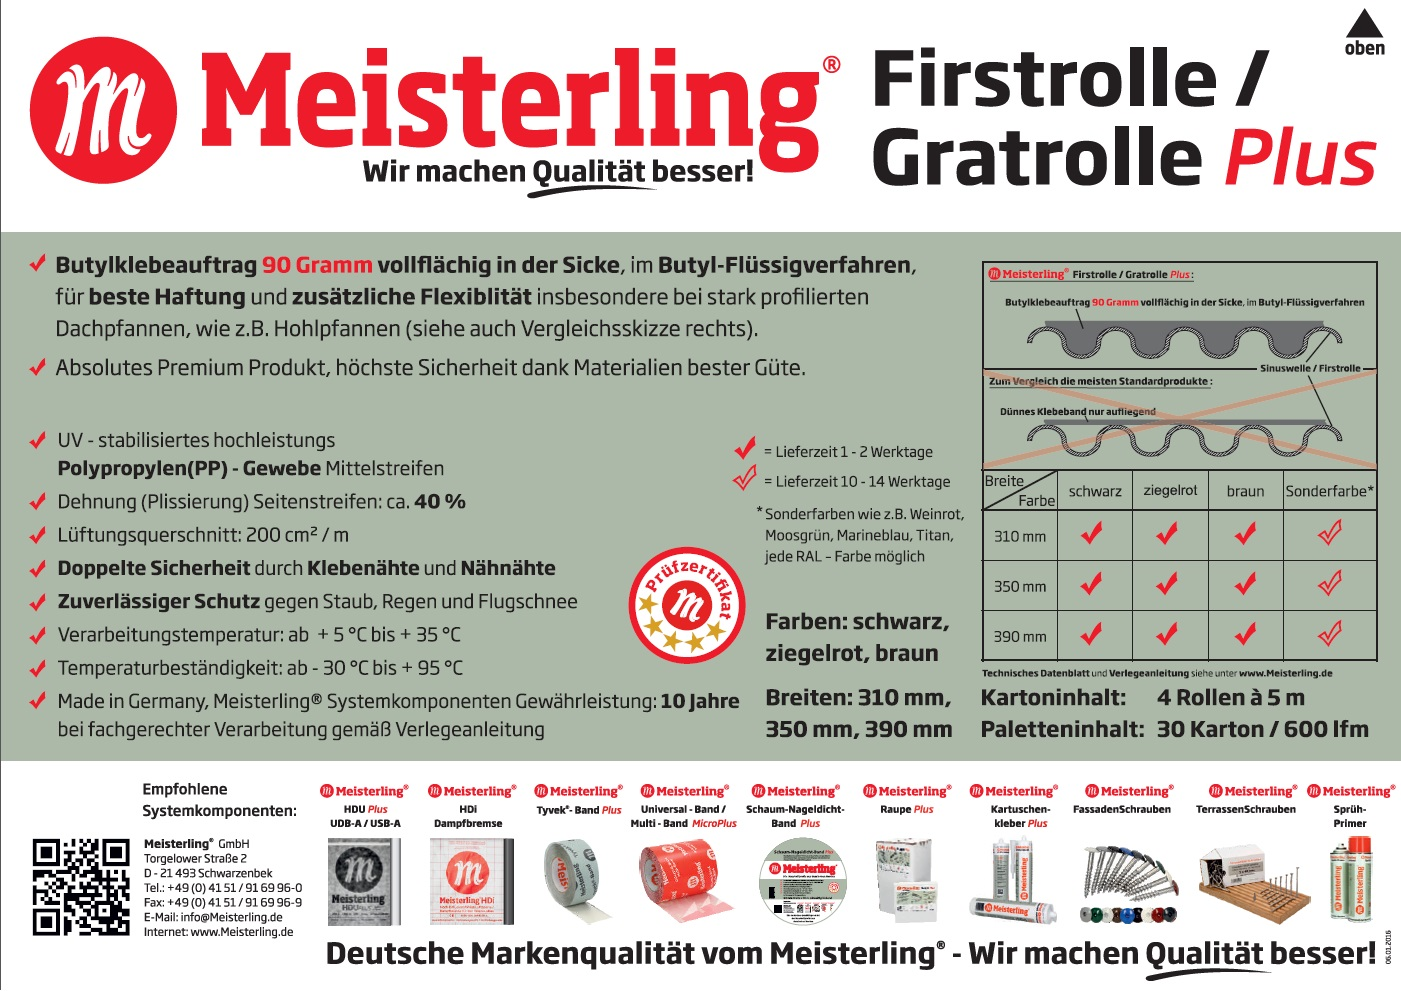 Grat Meisterling/® Firstrolle Roll first Gratrolle 320 mm First L/üfter